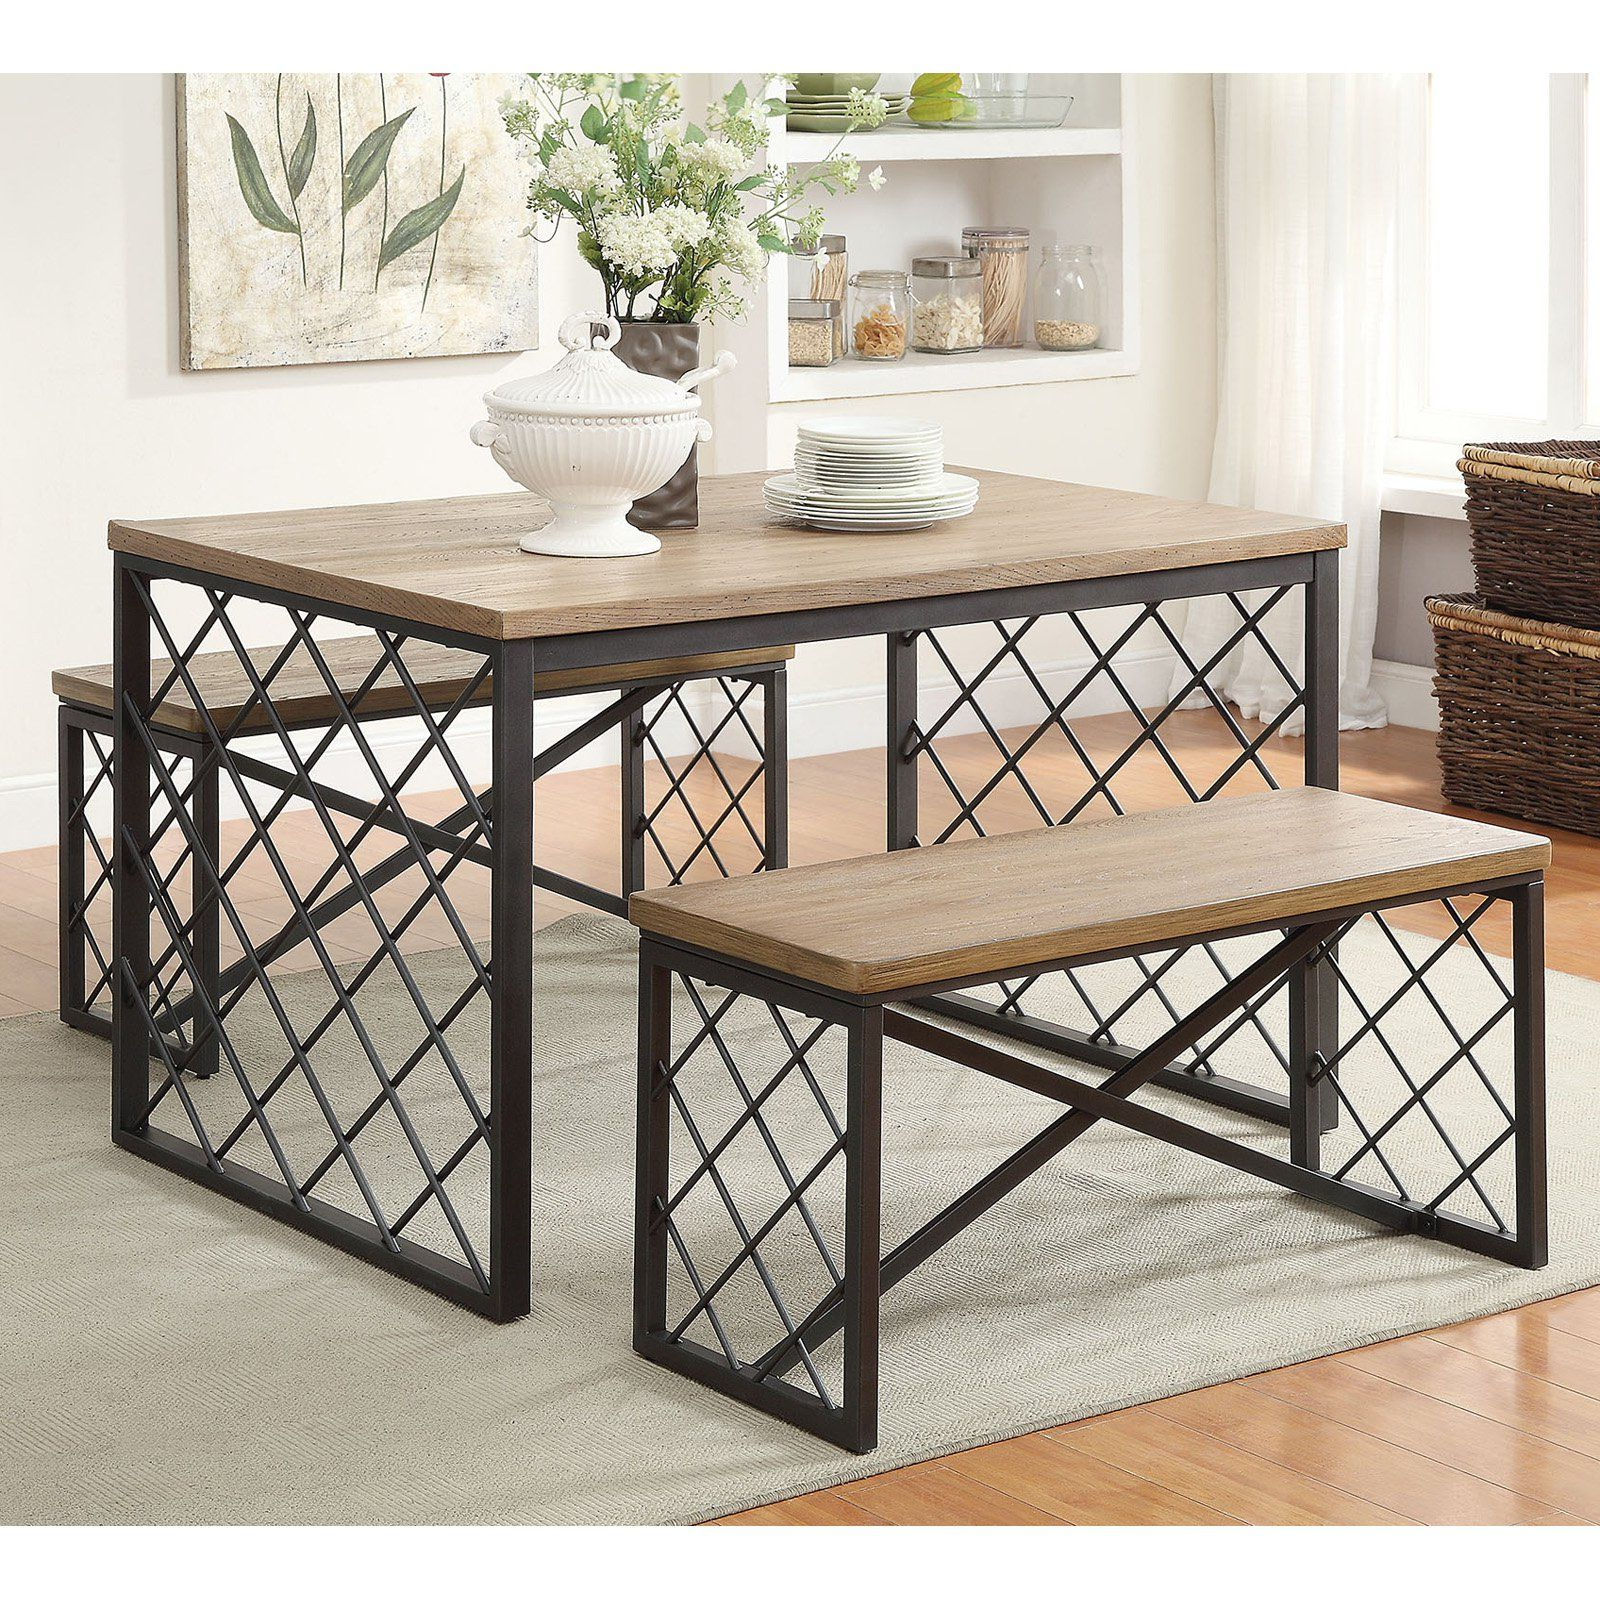 Widely Used Debby Small Space 3 Piece Dining Sets Intended For Acme Furniture Catalina 3 Piece Rectangular Dining Table Set (View 24 of 25)